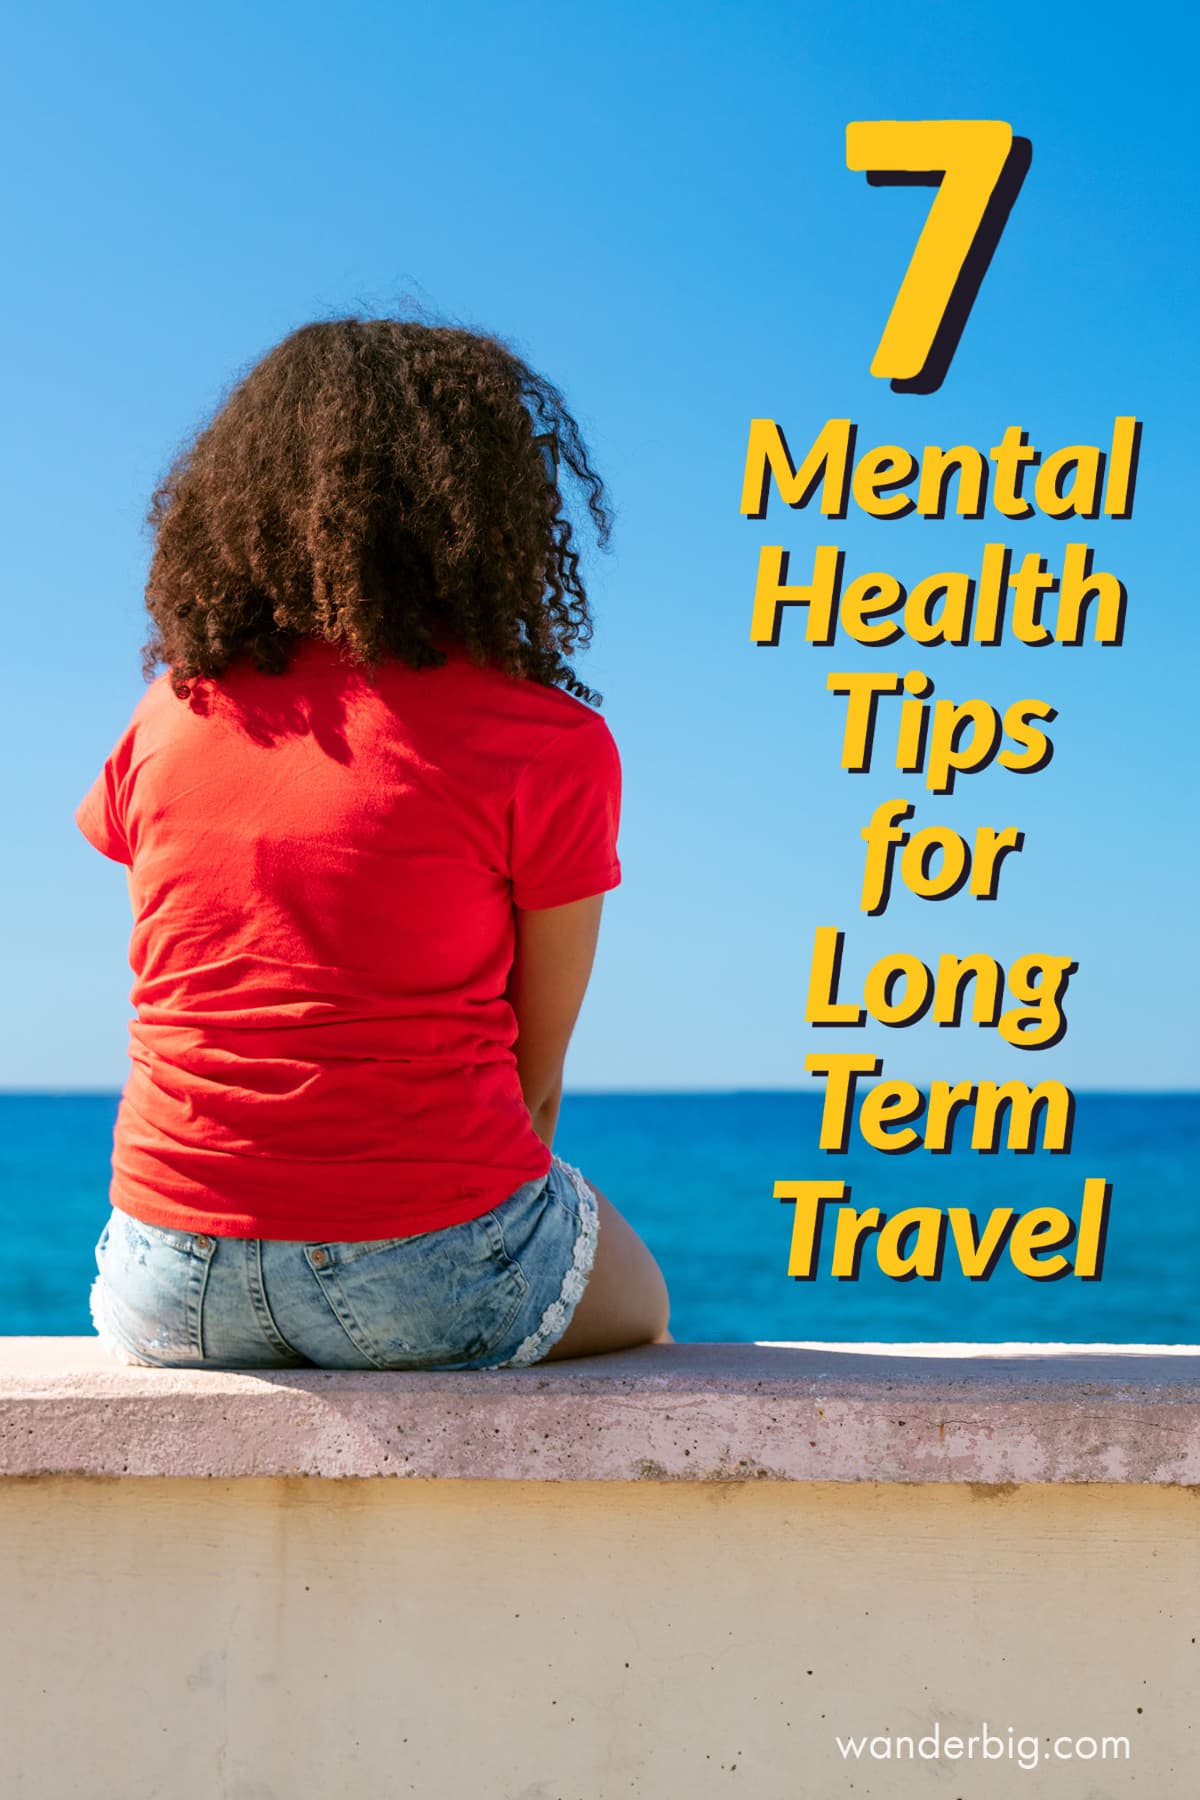 7 tips for managing mood and mental health while traveling internationally for school, work, or tourism.